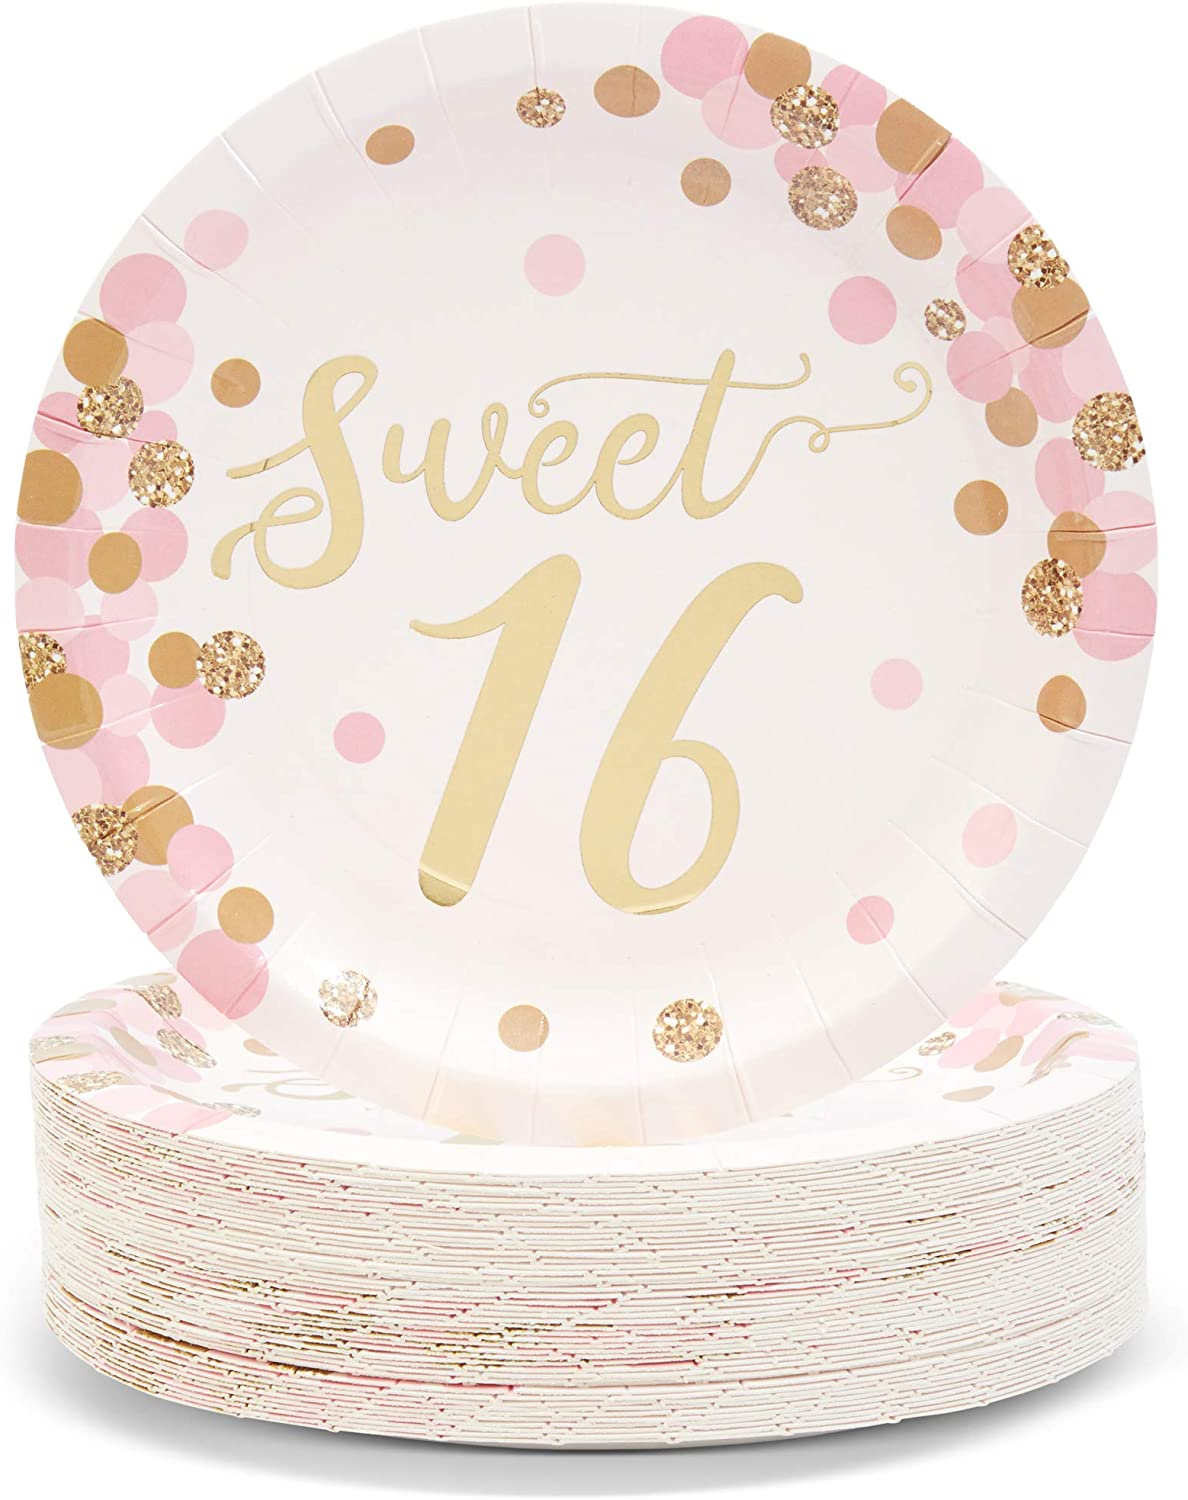 Sweet 16 Birthday Party Plates (7 Inches, Pink and Gold, 48-Pack)